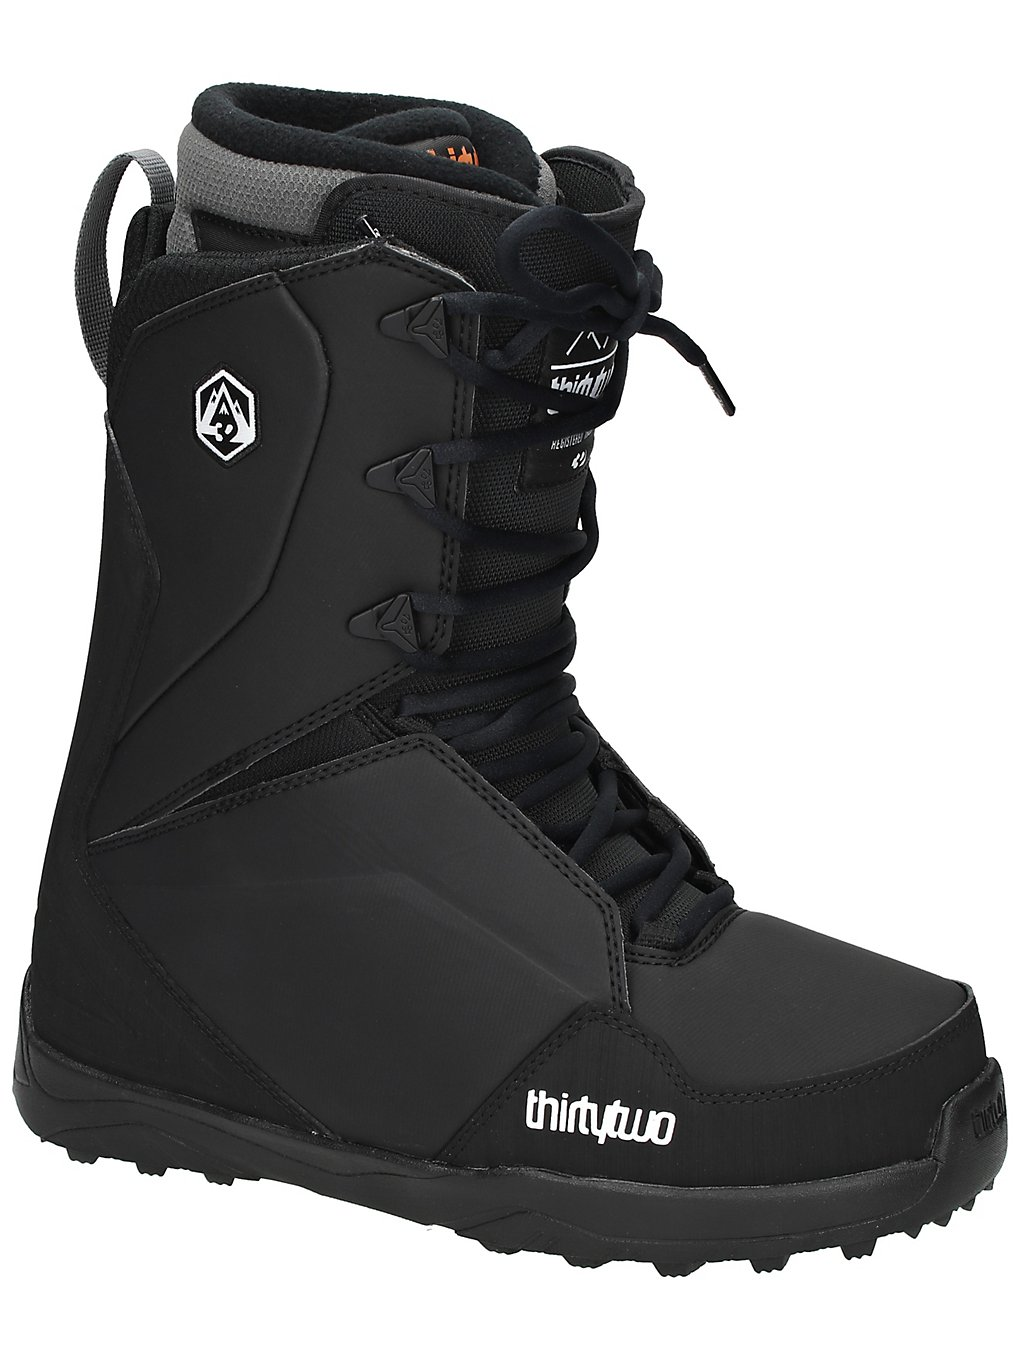 ThirtyTwo Lashed Snowboard Boots noir